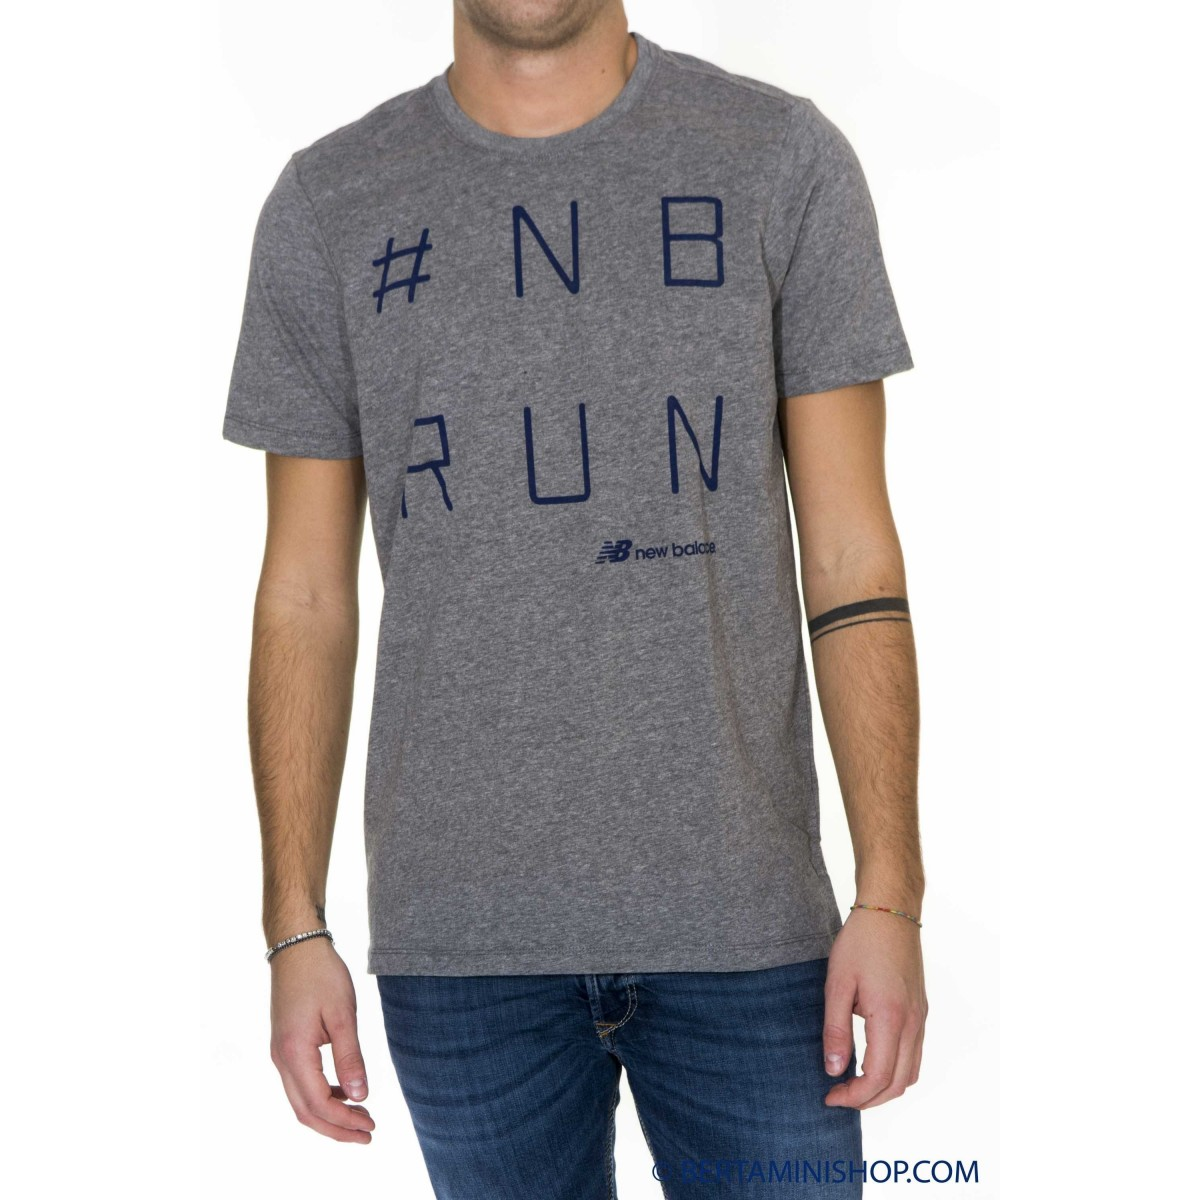 T-Shirt New Balance Uomo - 16S103 T-Shirt